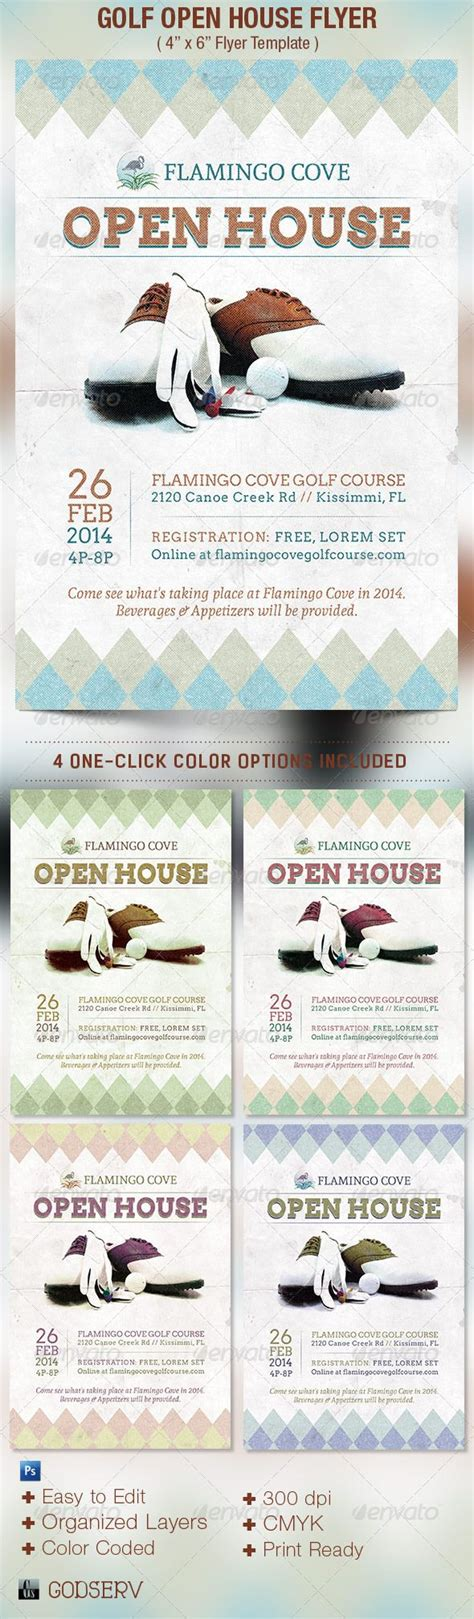 22 best images about open house on pinterest trade show